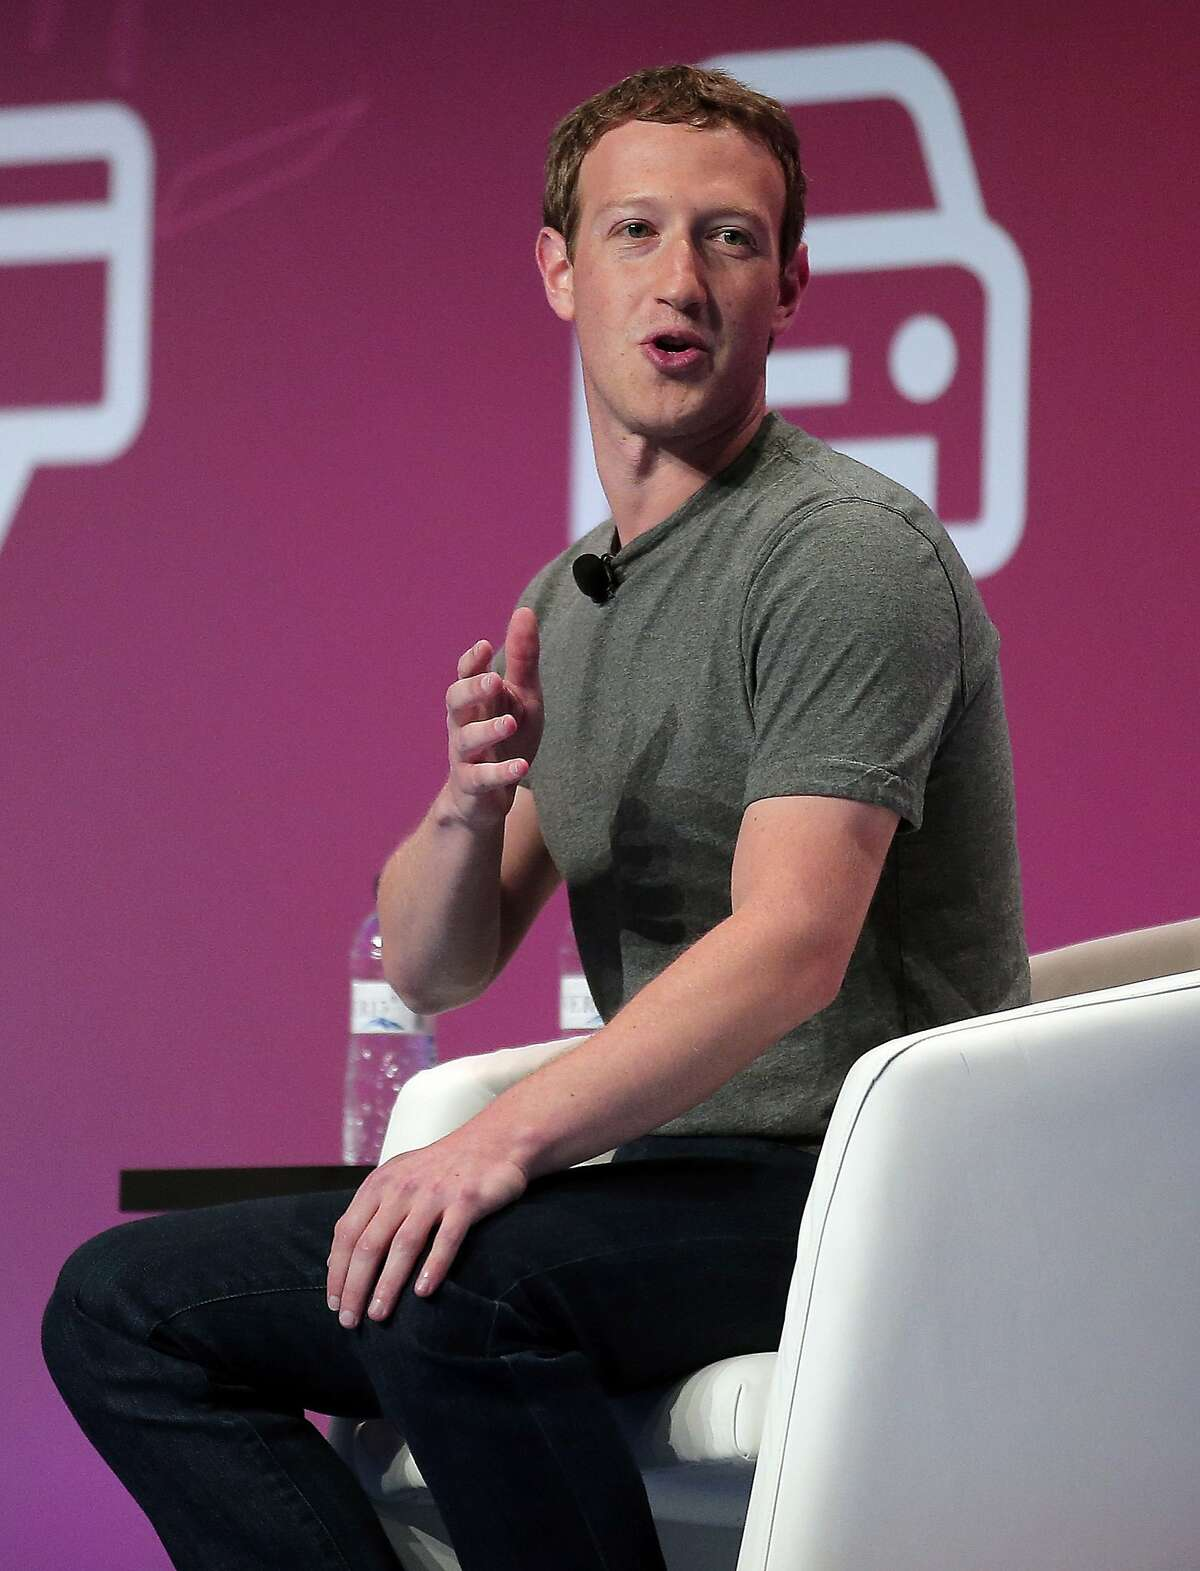 Facebook CEO Mark Zuckerberg gestures during a conference at the Mobile World Congress wireless show in Barcelona, Spain, Monday, Feb. 22, 2016. (AP Photo/Manu Fernandez)